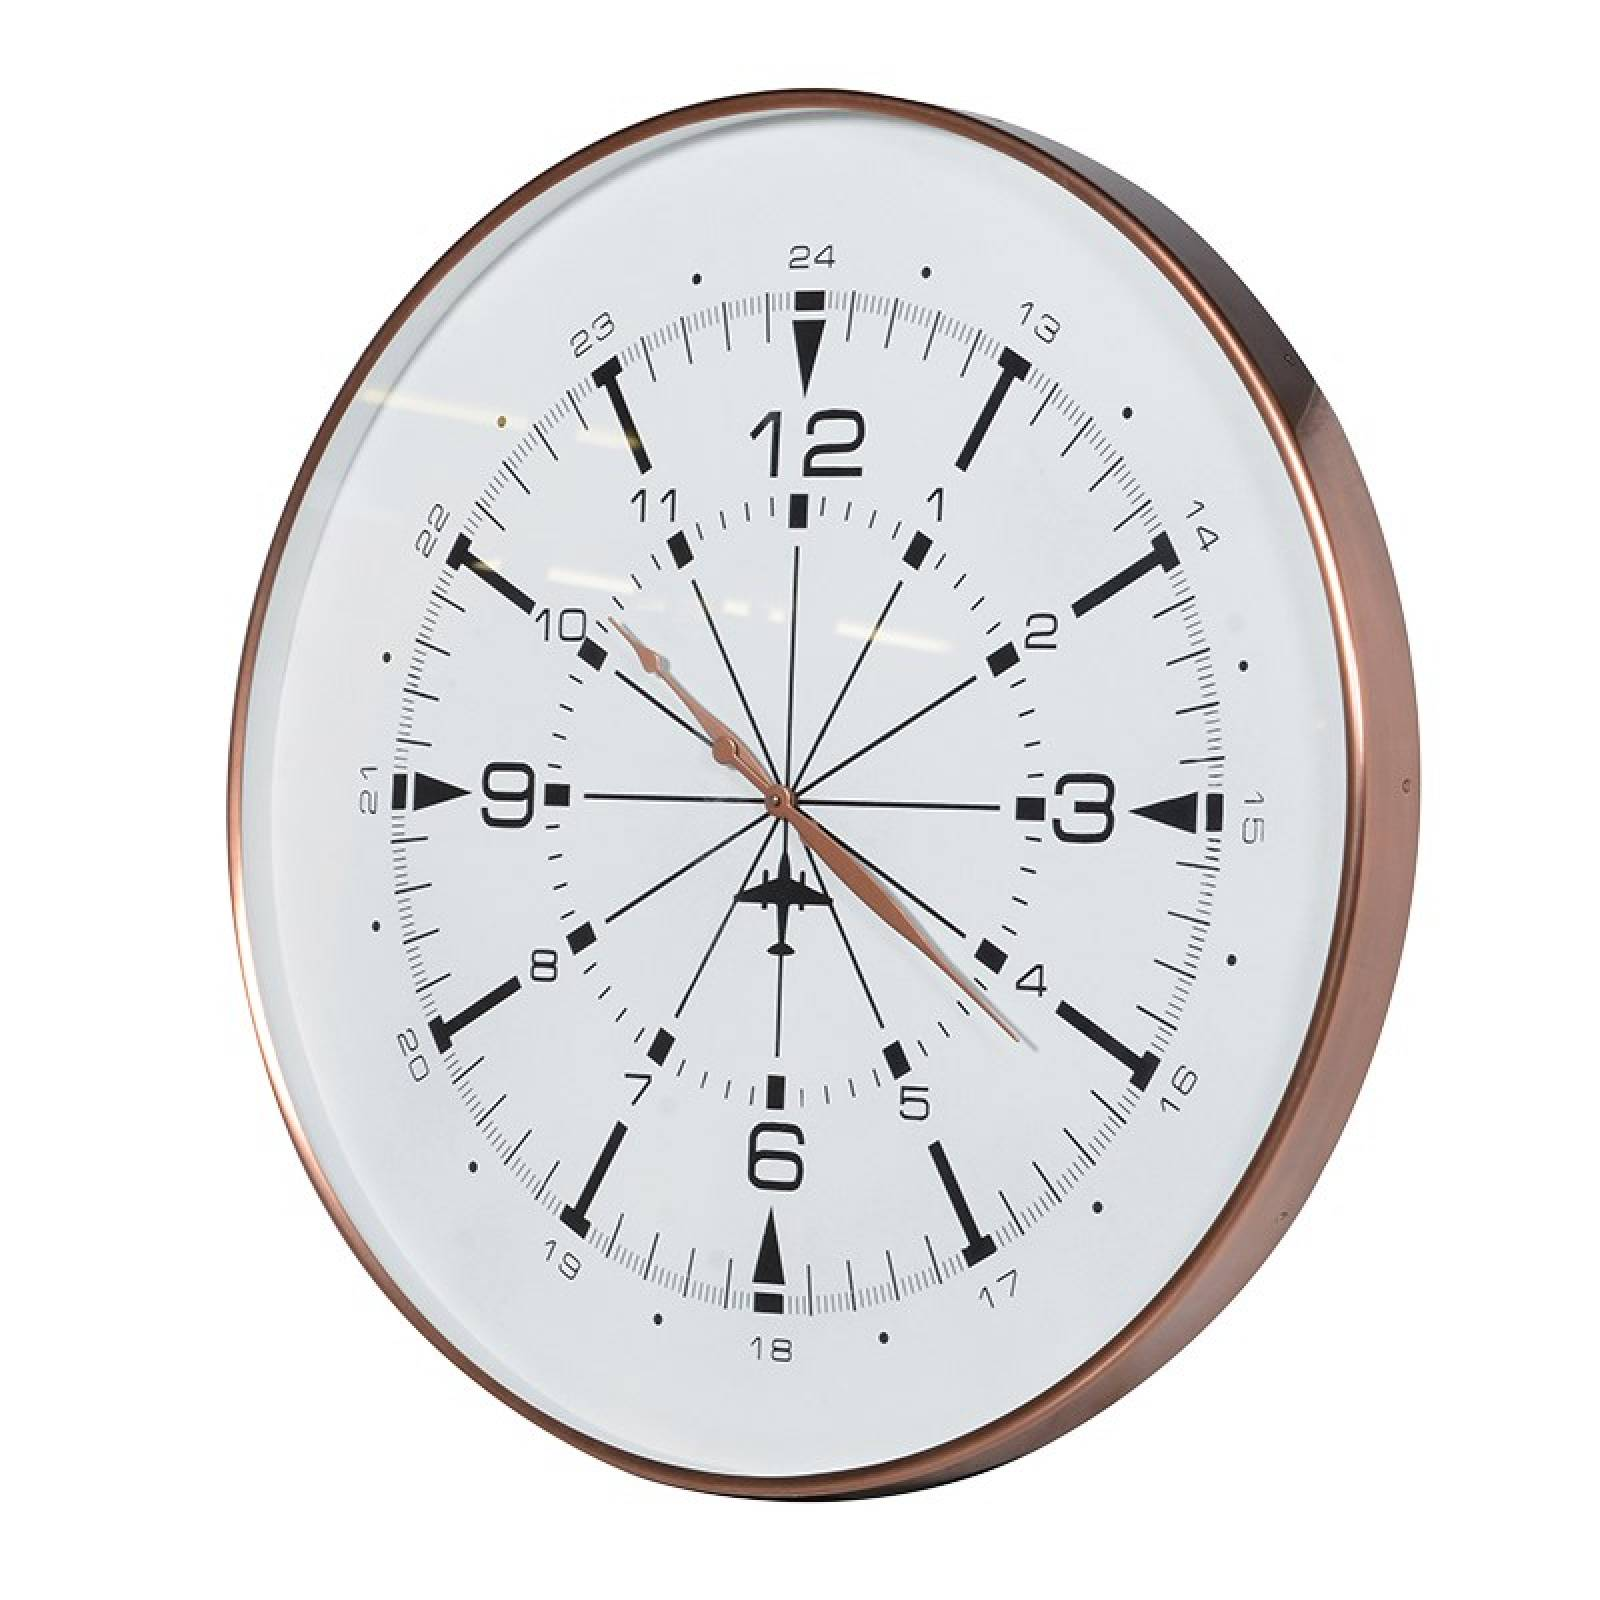 Copper Finish Airport Wall Clock Large 76cm